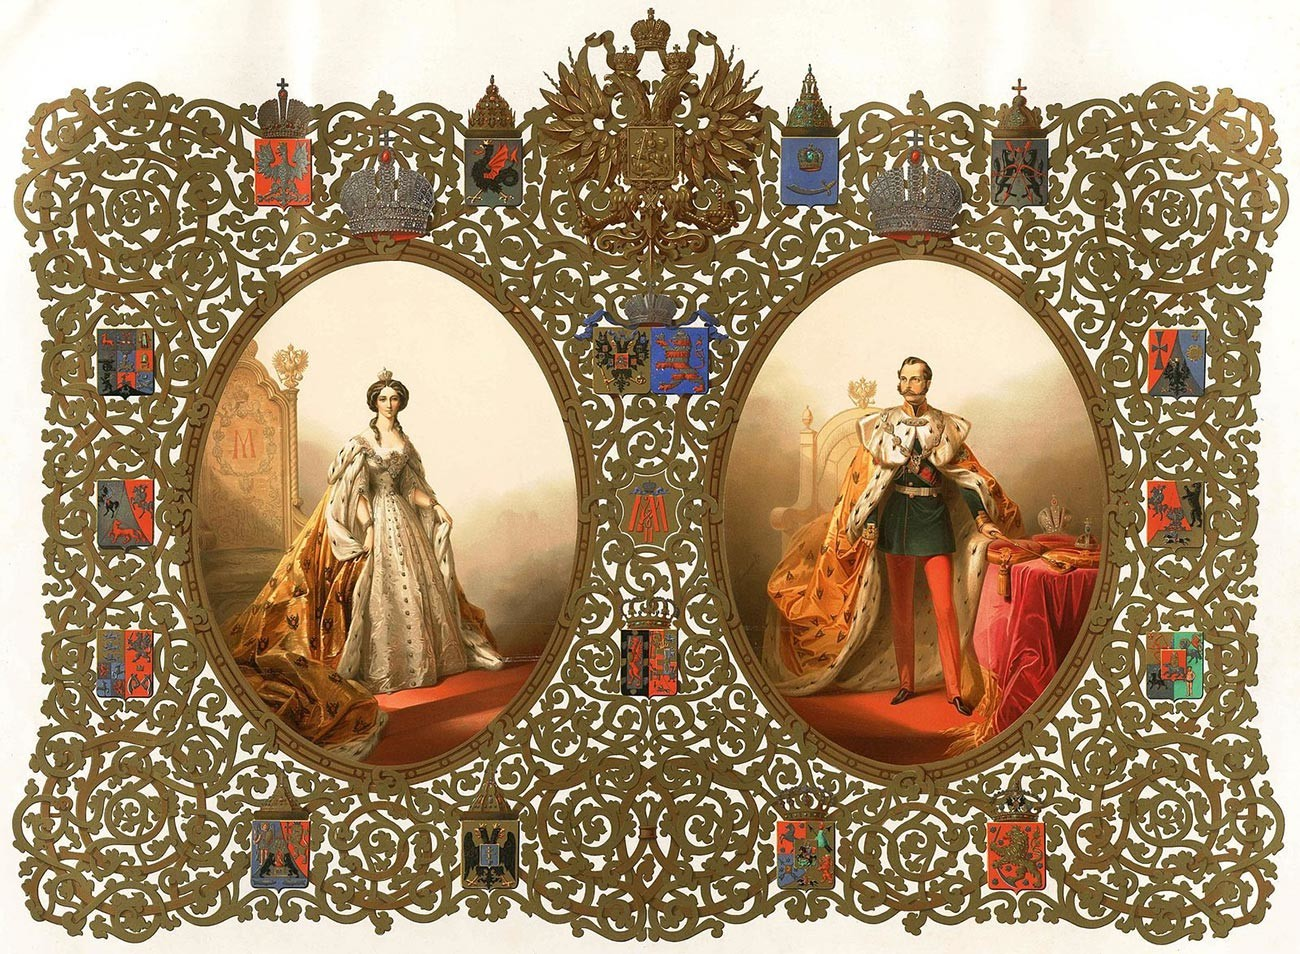 Portrait of Their Imperial Majesties